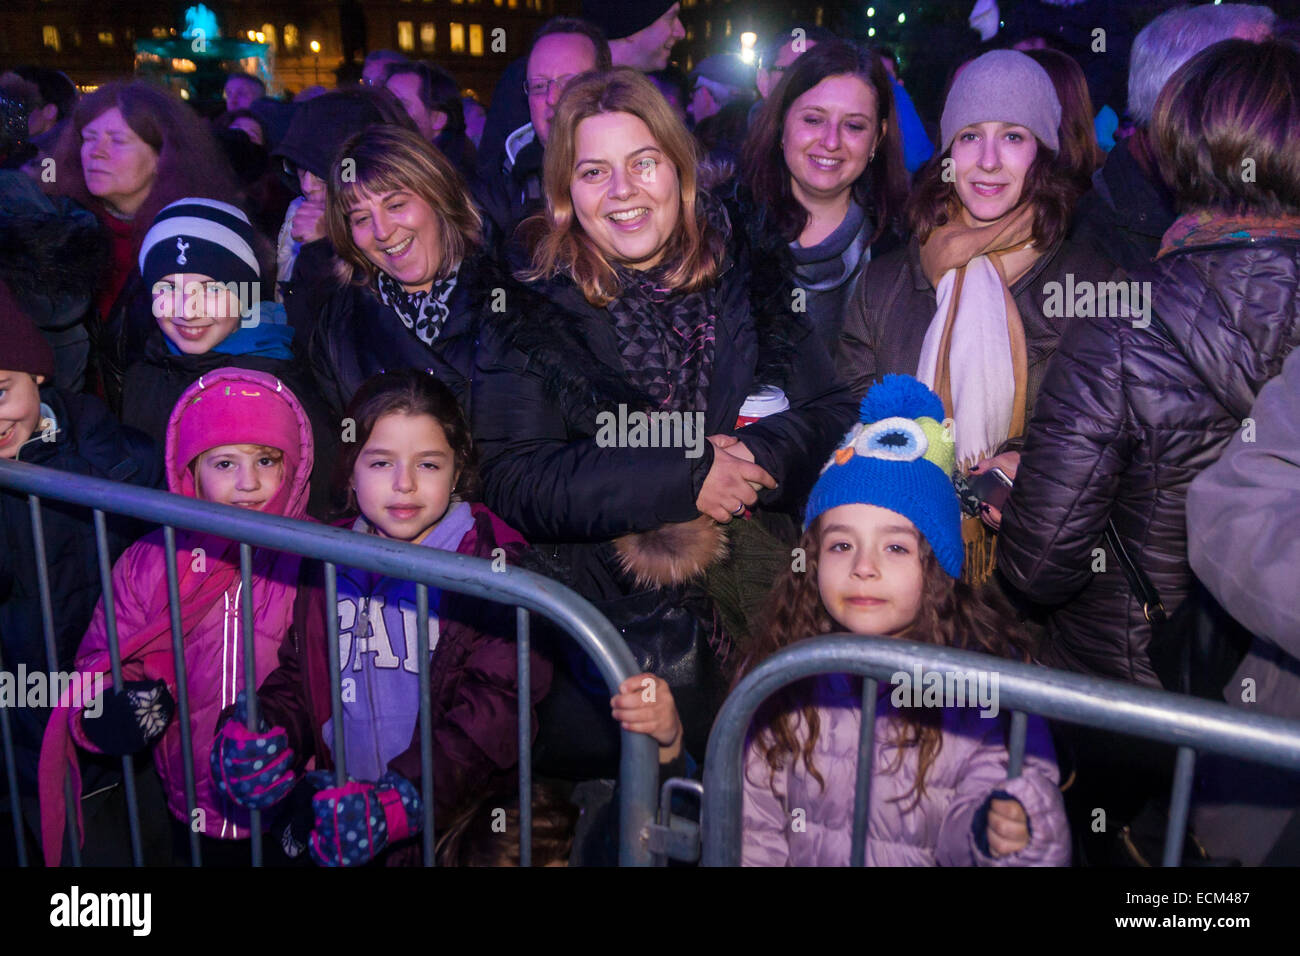 Trafalgar Square, London, December 16th 2014.  London's Jewish community celebrates Chanukah in the Square which - Stock Image